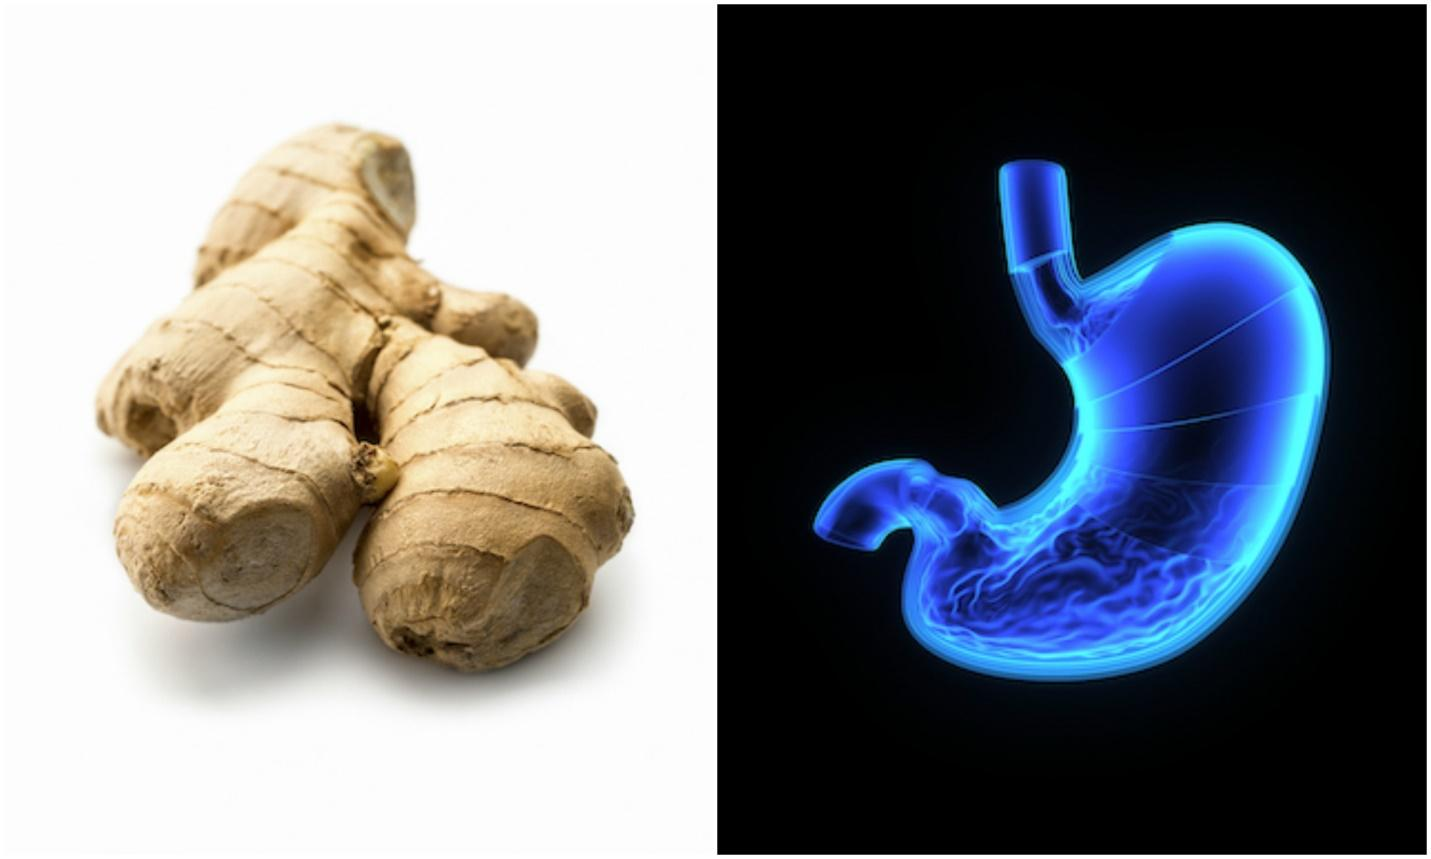 http://www.healthista.com/wp-content/uploads/2016/07/Ginger-and-stomach-foods-that-look-like-the-body-part-theyre-good-for-by-healthista.jpg